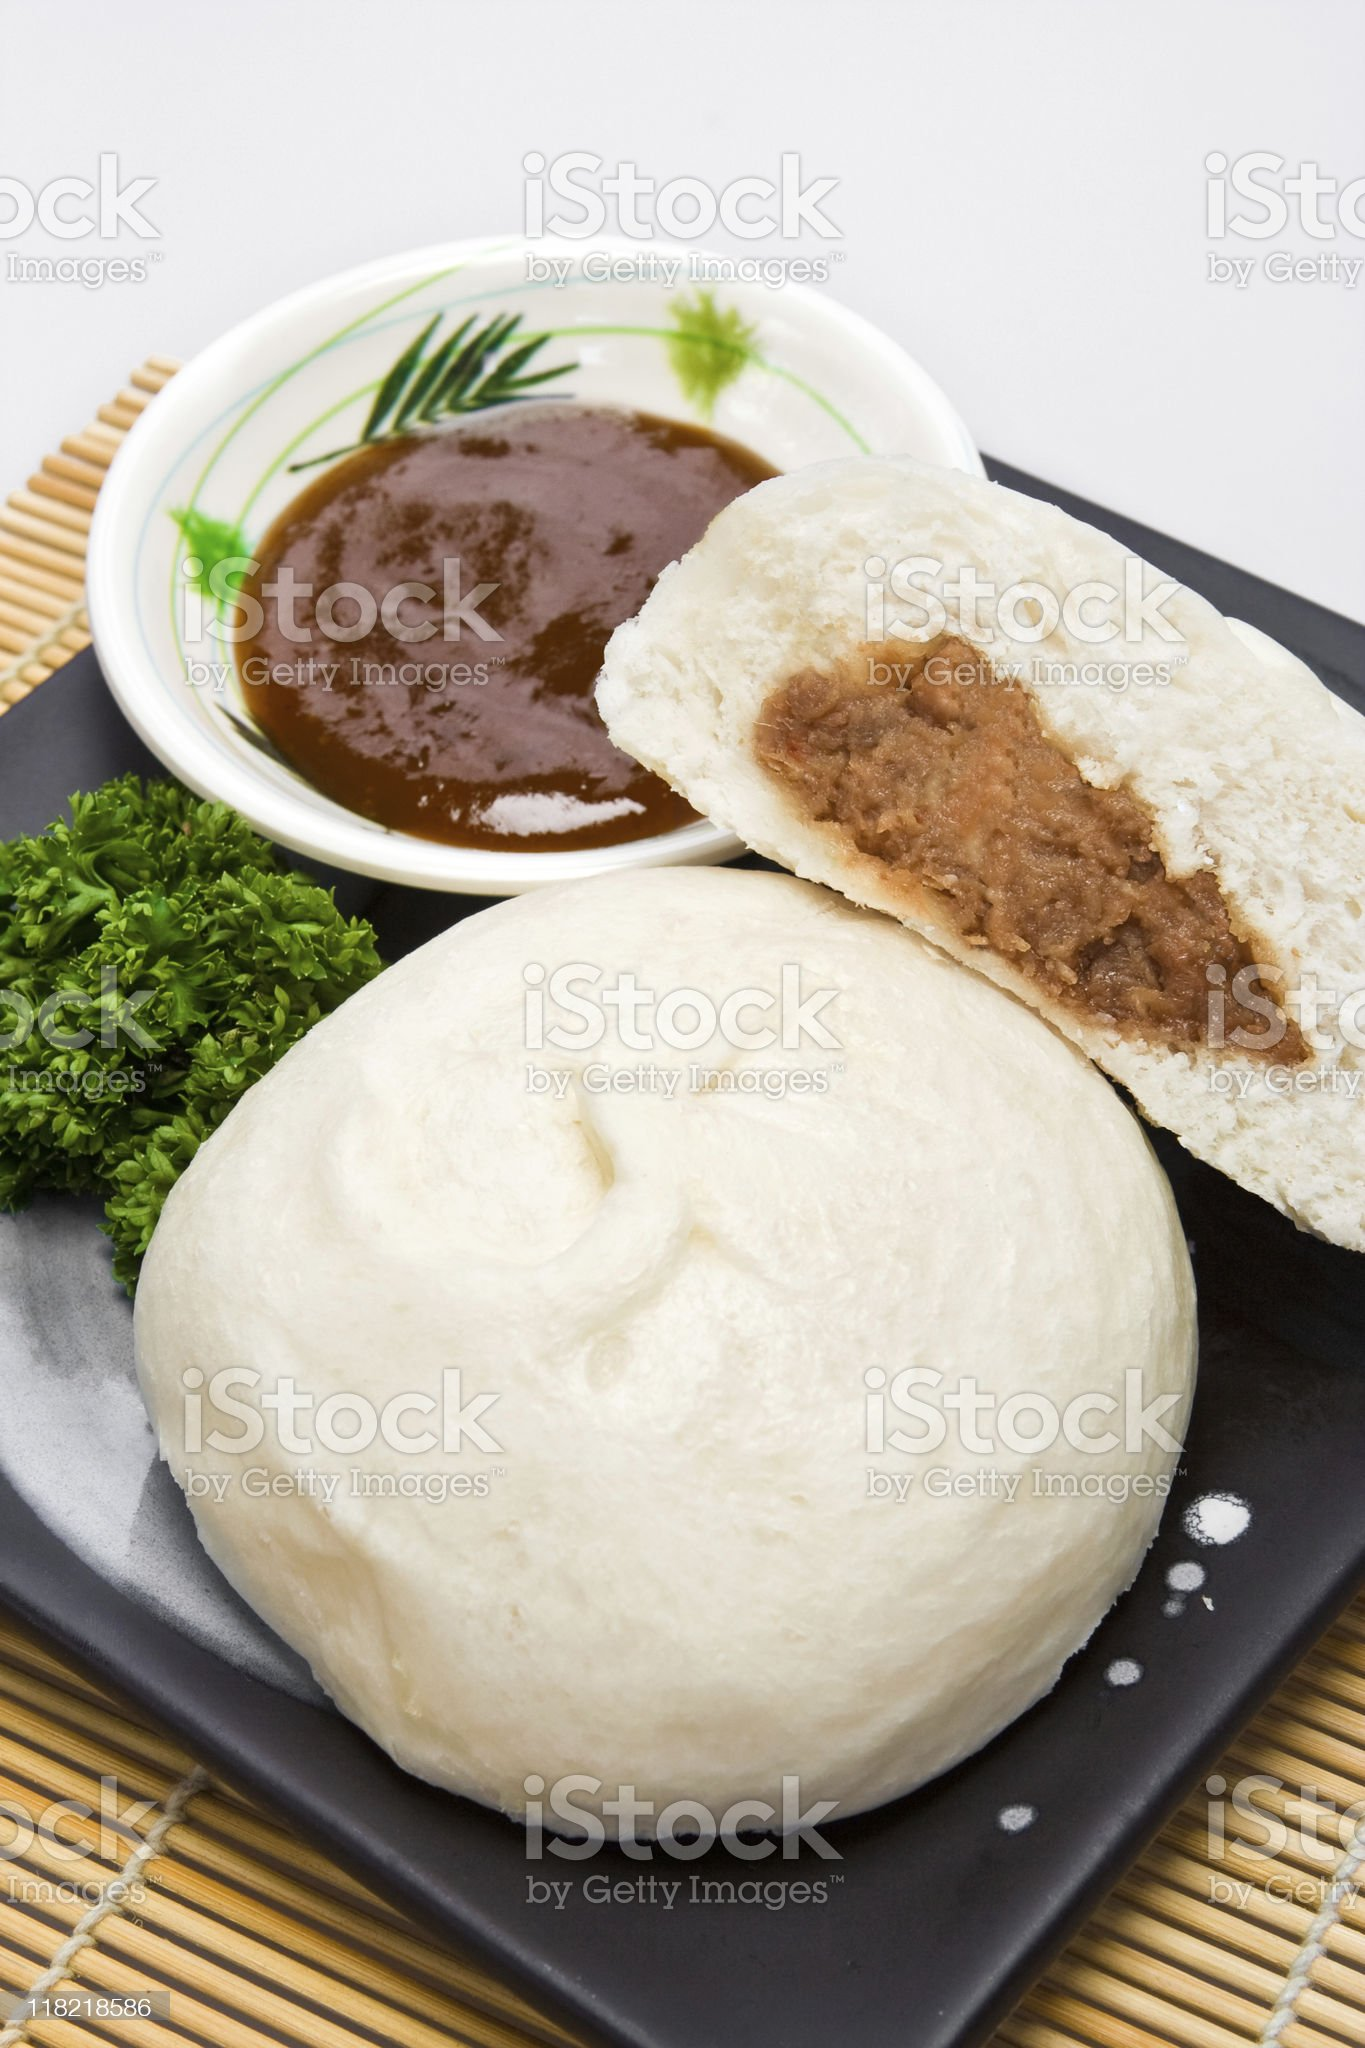 Siopao with hoisin sauce on the side royalty-free stock photo